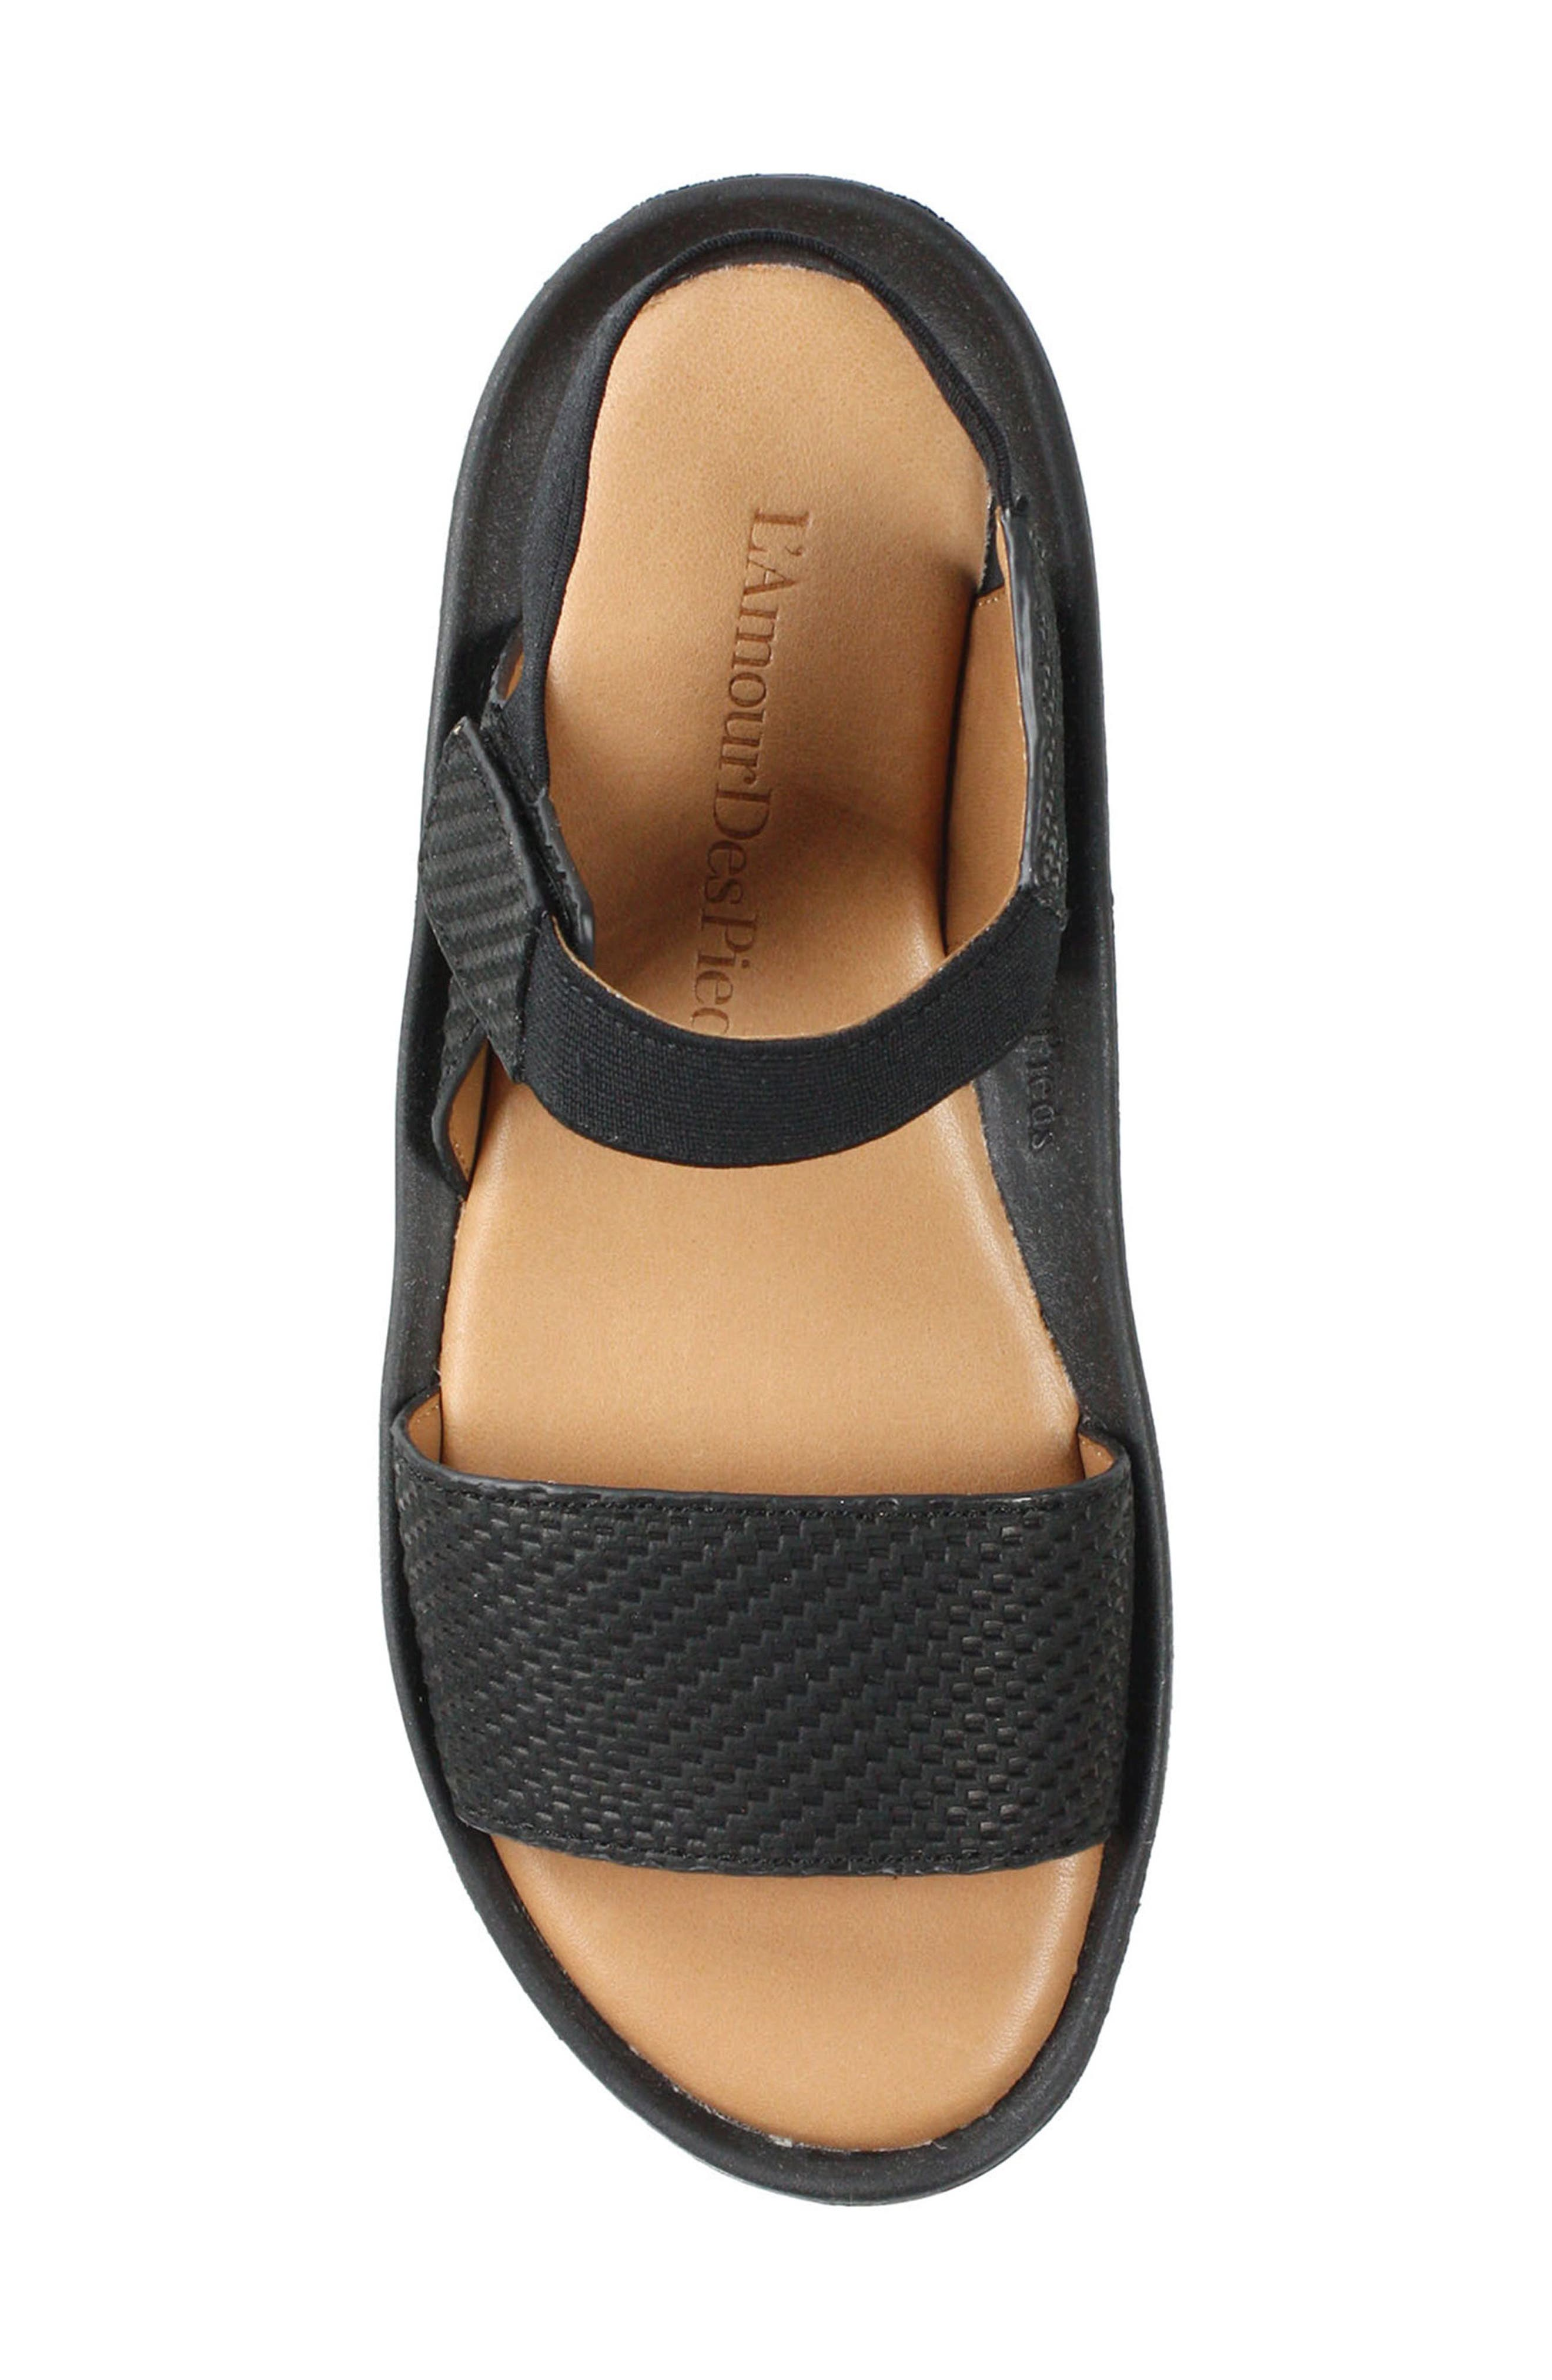 L'AMOUR DES PIEDS, Nolwyn Sandal, Alternate thumbnail 4, color, BLACK WOVEN LEATHER